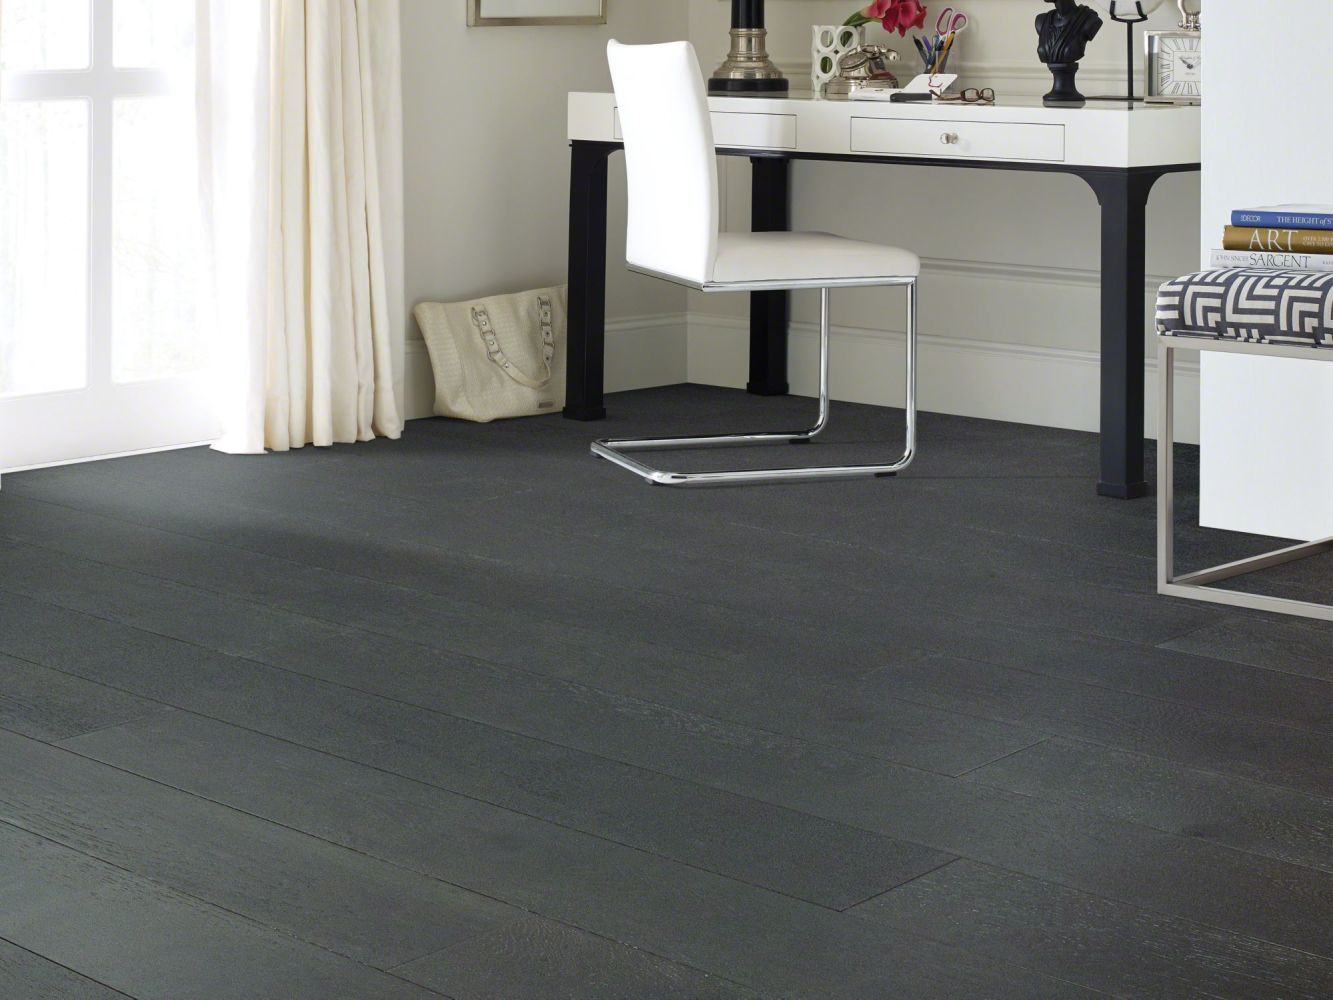 Shaw Floors Home Fn Gold Hardwood Elegance Oak Noir 09033_HW689